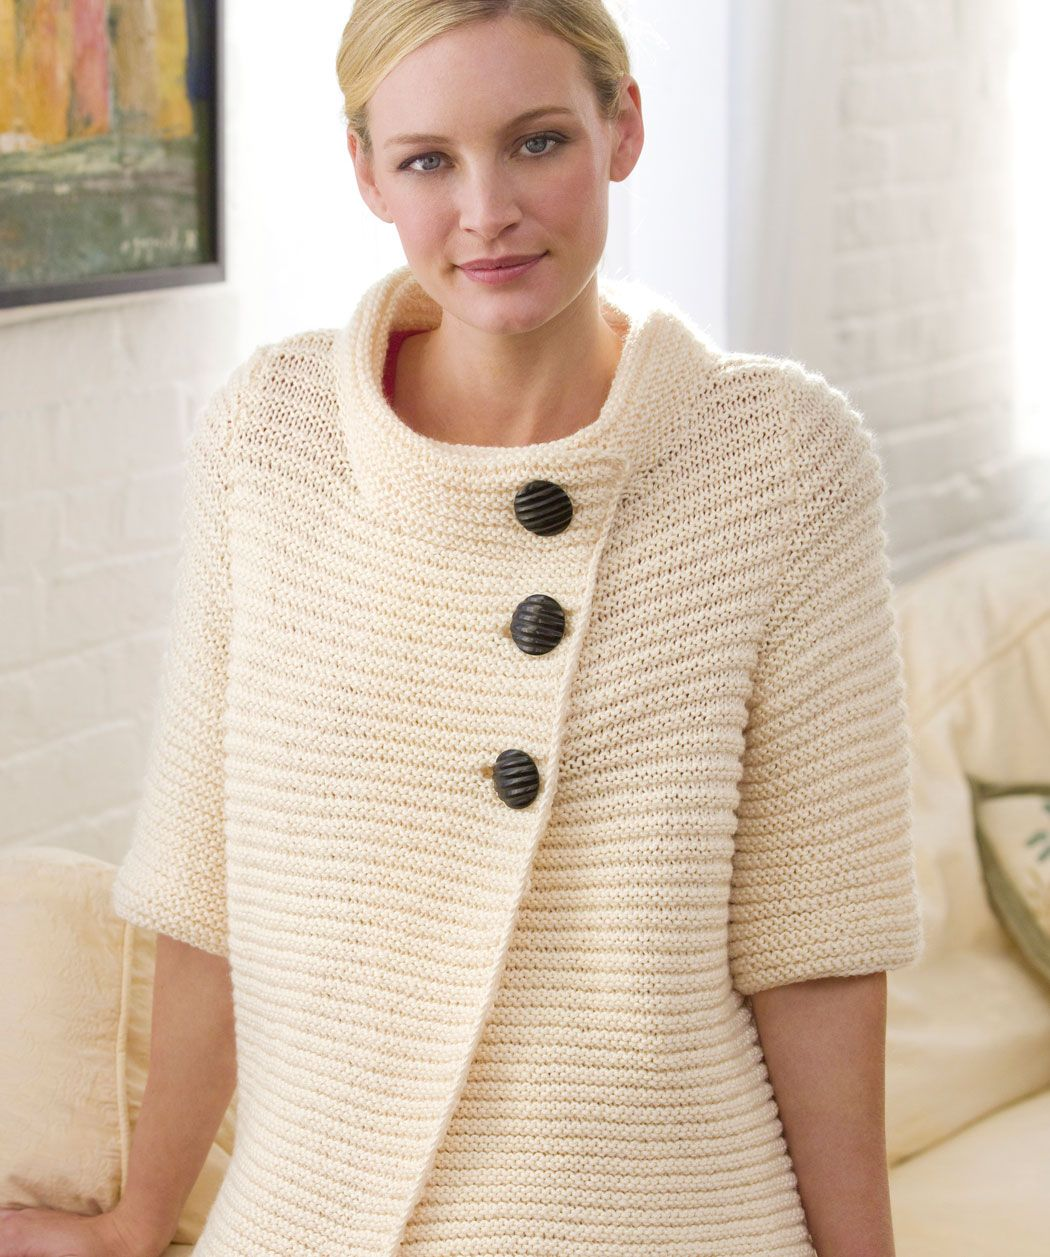 Knit Ribbed Cardigan Knitting Pattern | Red Heart - Free pattern ...